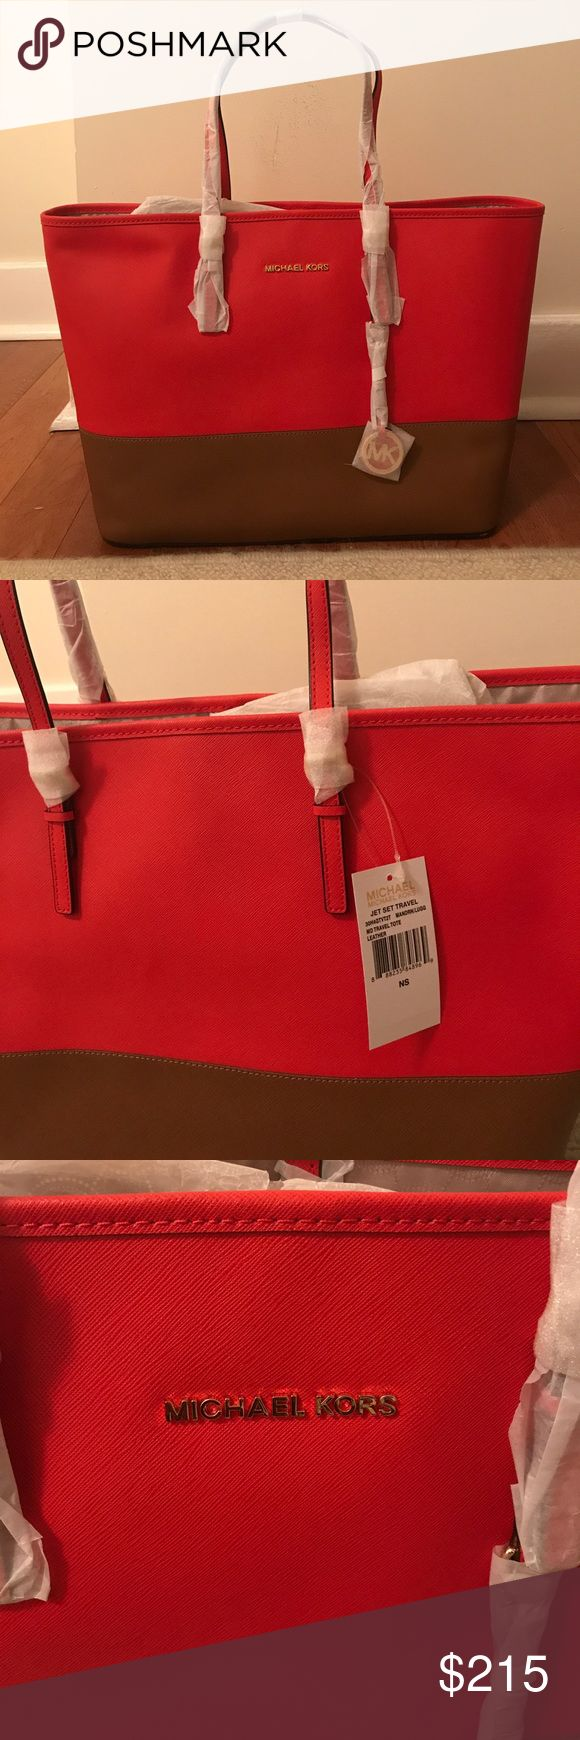 Michael Kors - jet set md travel tote. New! Never used! Michael Kors jet set travel tote! Michael Kors Bags Totes